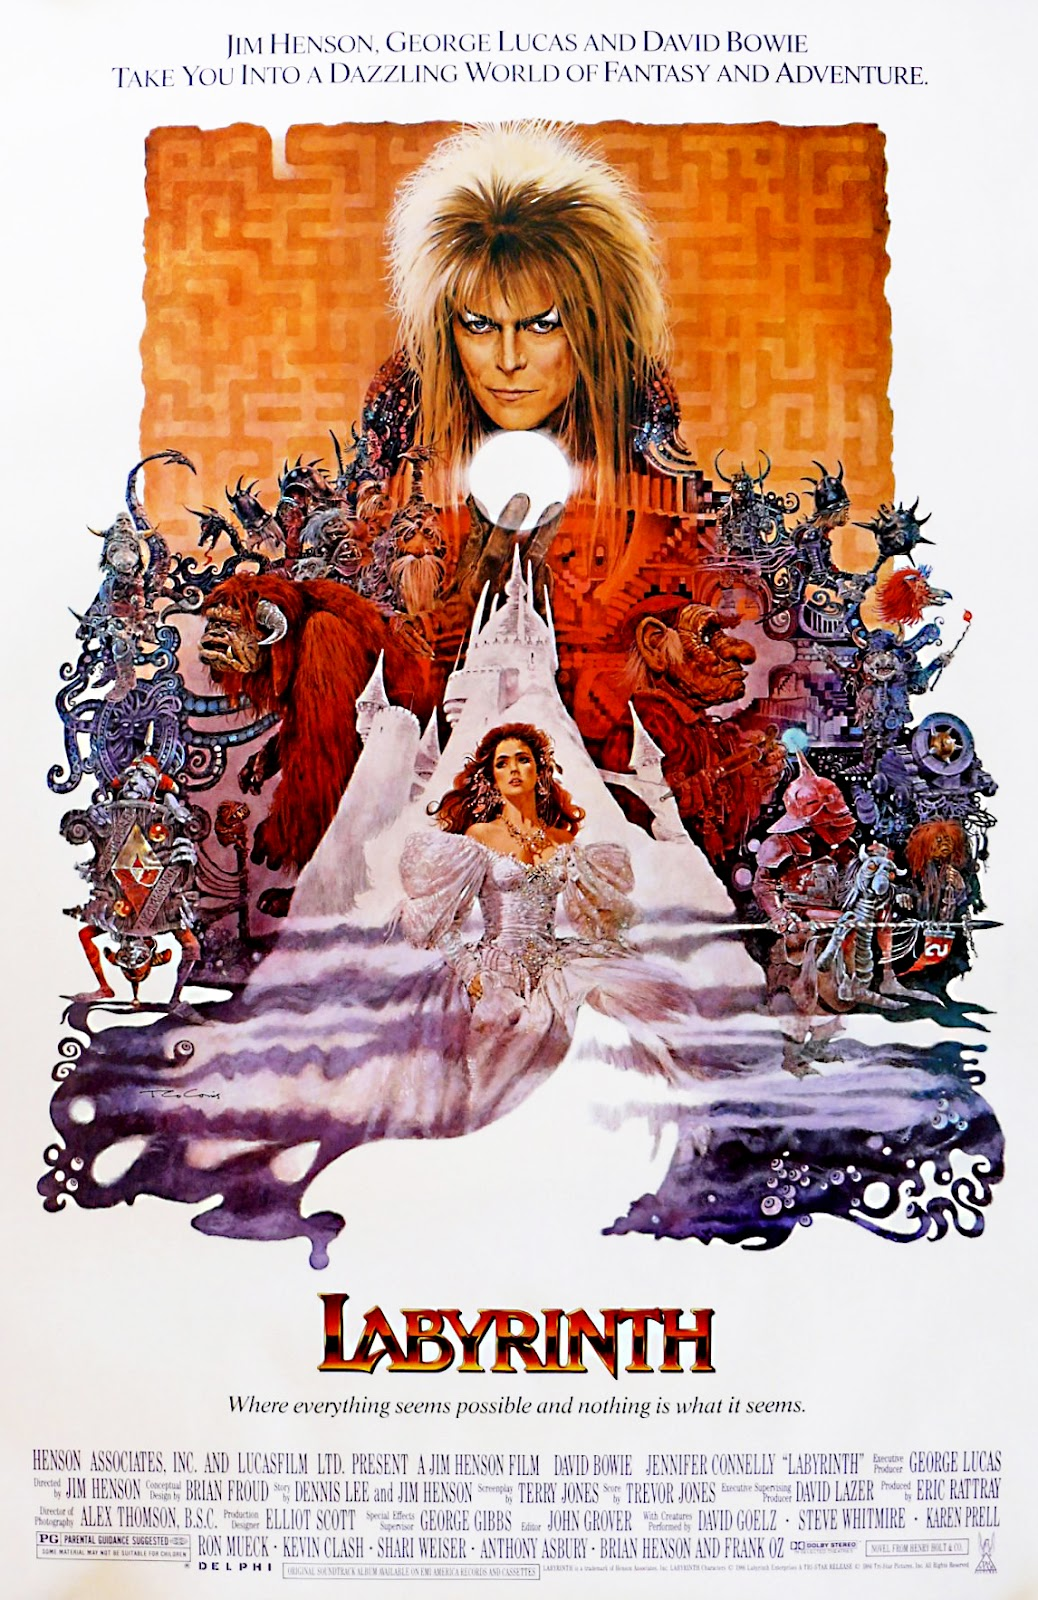 Labyrinth (1986) | Labyrinth (1986) | Pinterest Labyrinth 1986